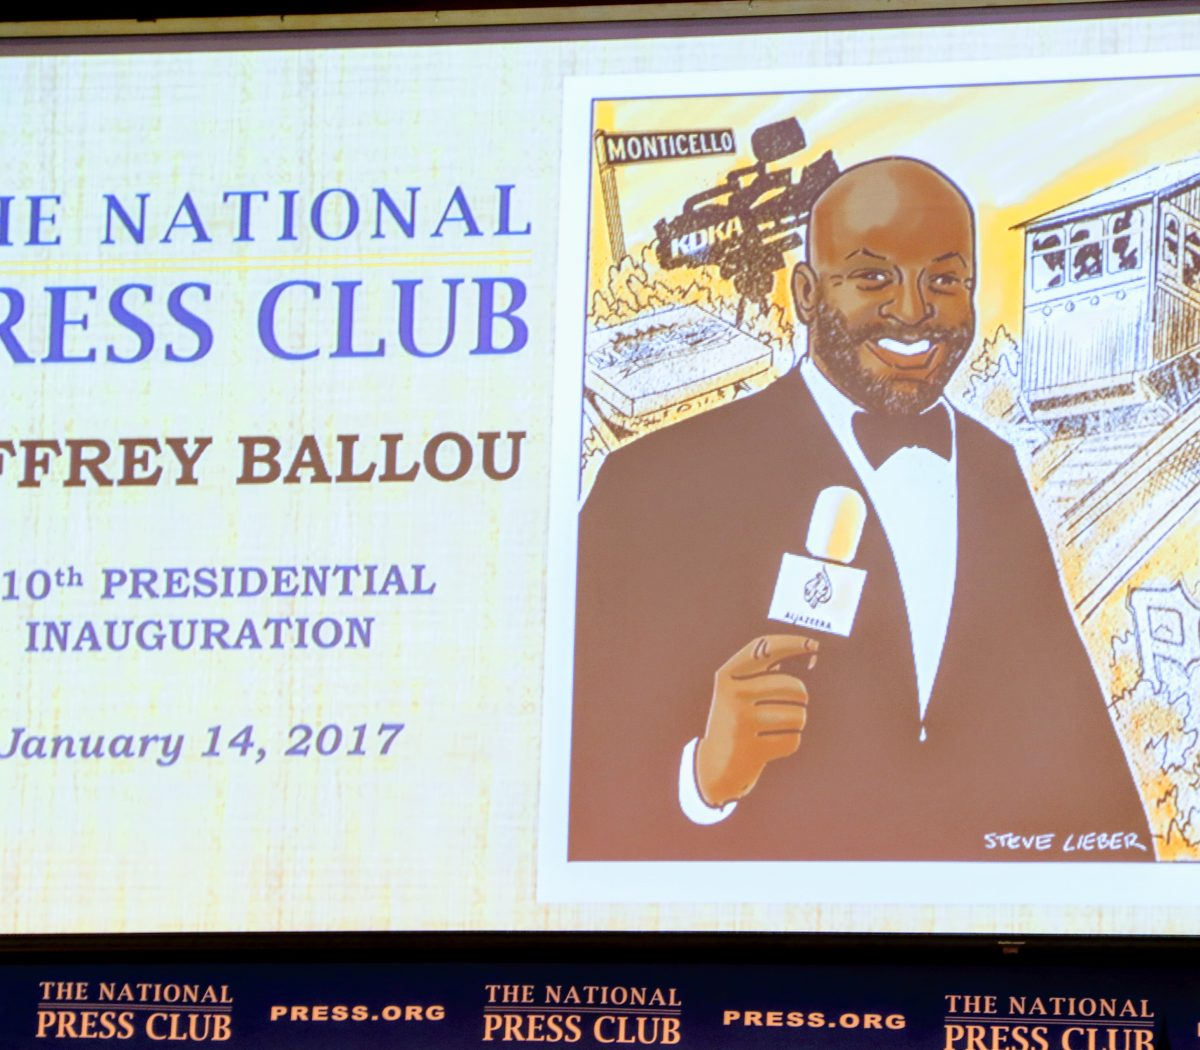 Steve Lieber designed this illustration for the program booklet to mark the inauguration of Jeffrey Ballou as the 110th President of the National Press Club. /Photo by Shevry Lassiter